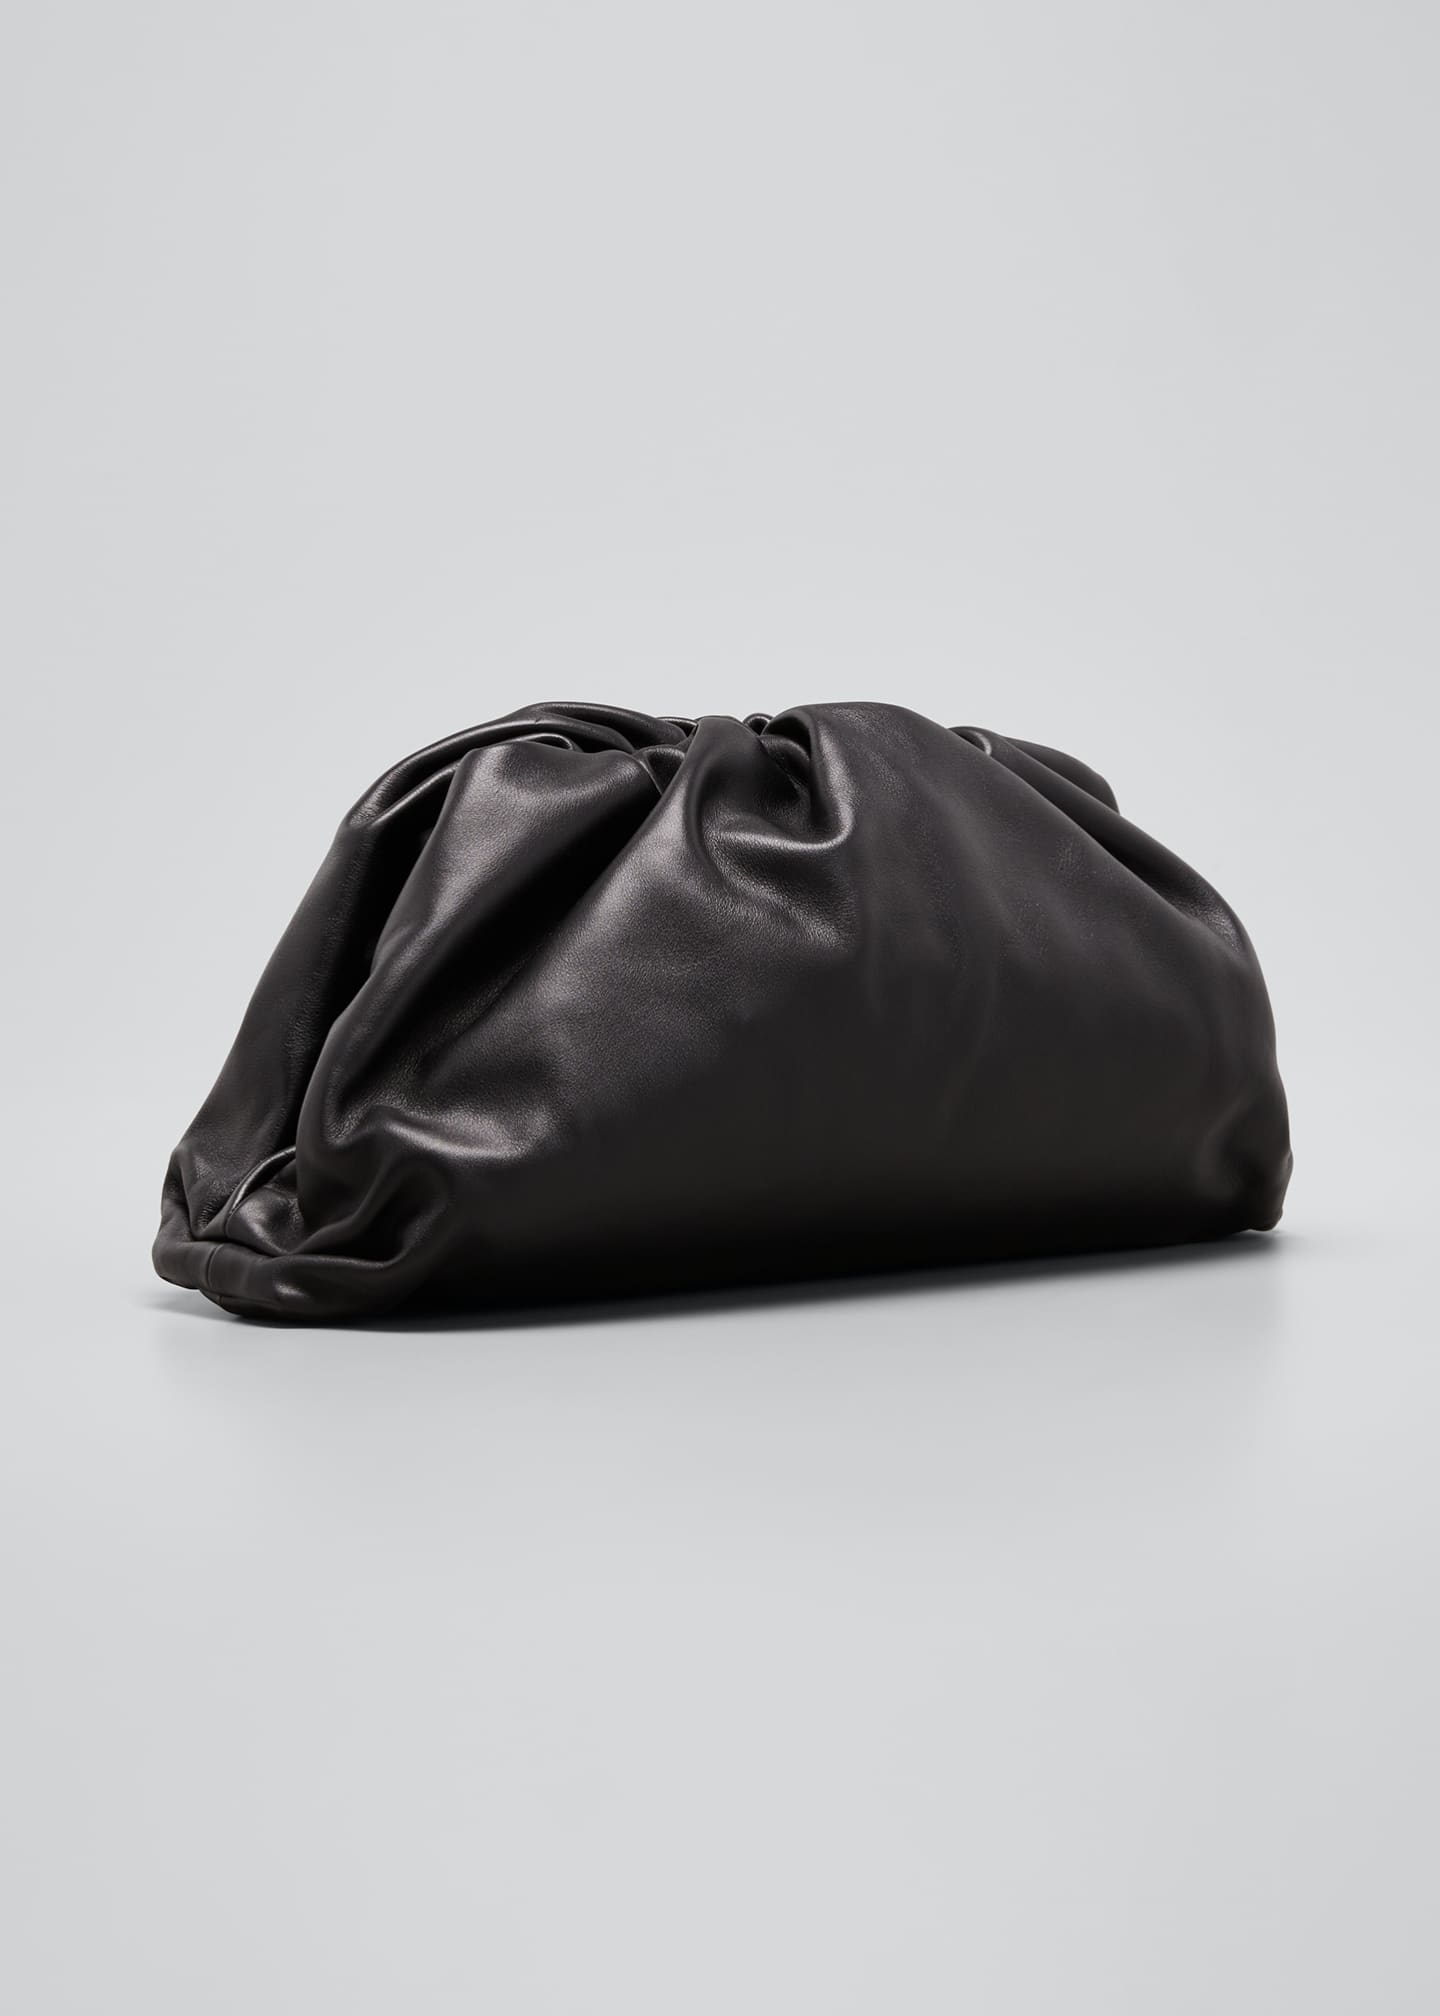 Image 3 of 5: The Pouch Bag in Butter Calf Leather